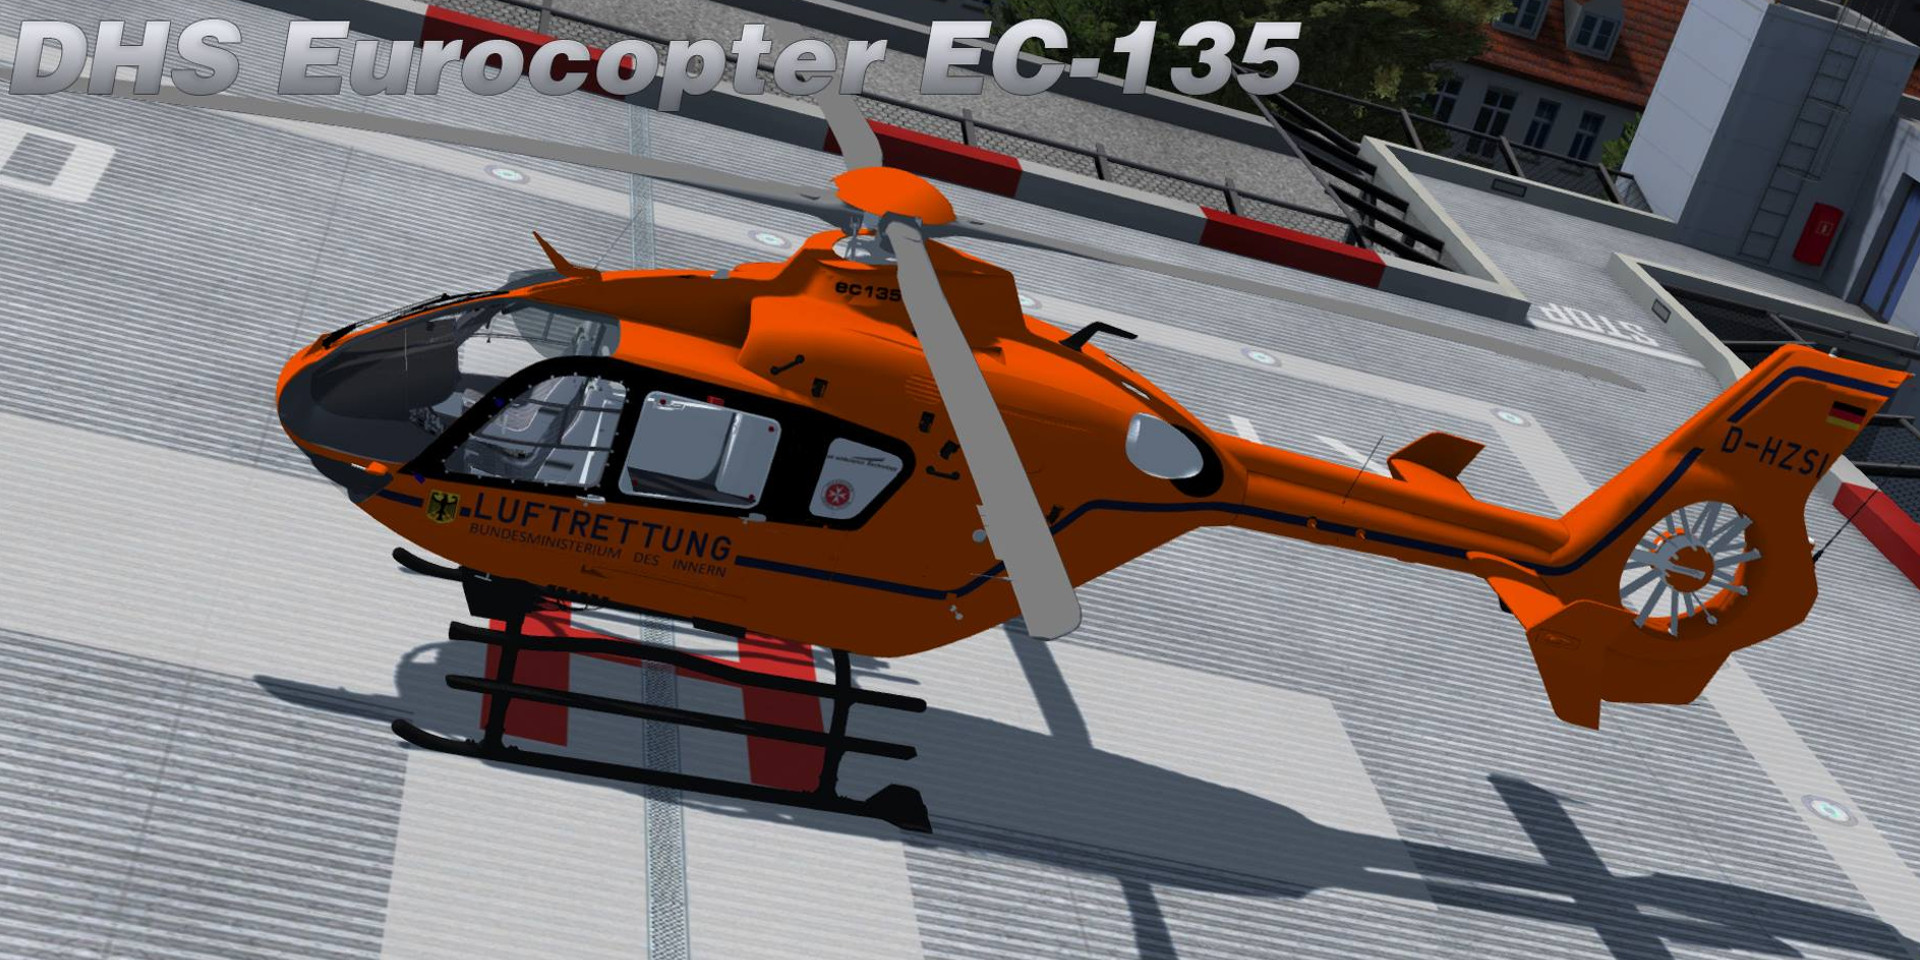 DHS Eurocopter EC 135 Preview June 2018